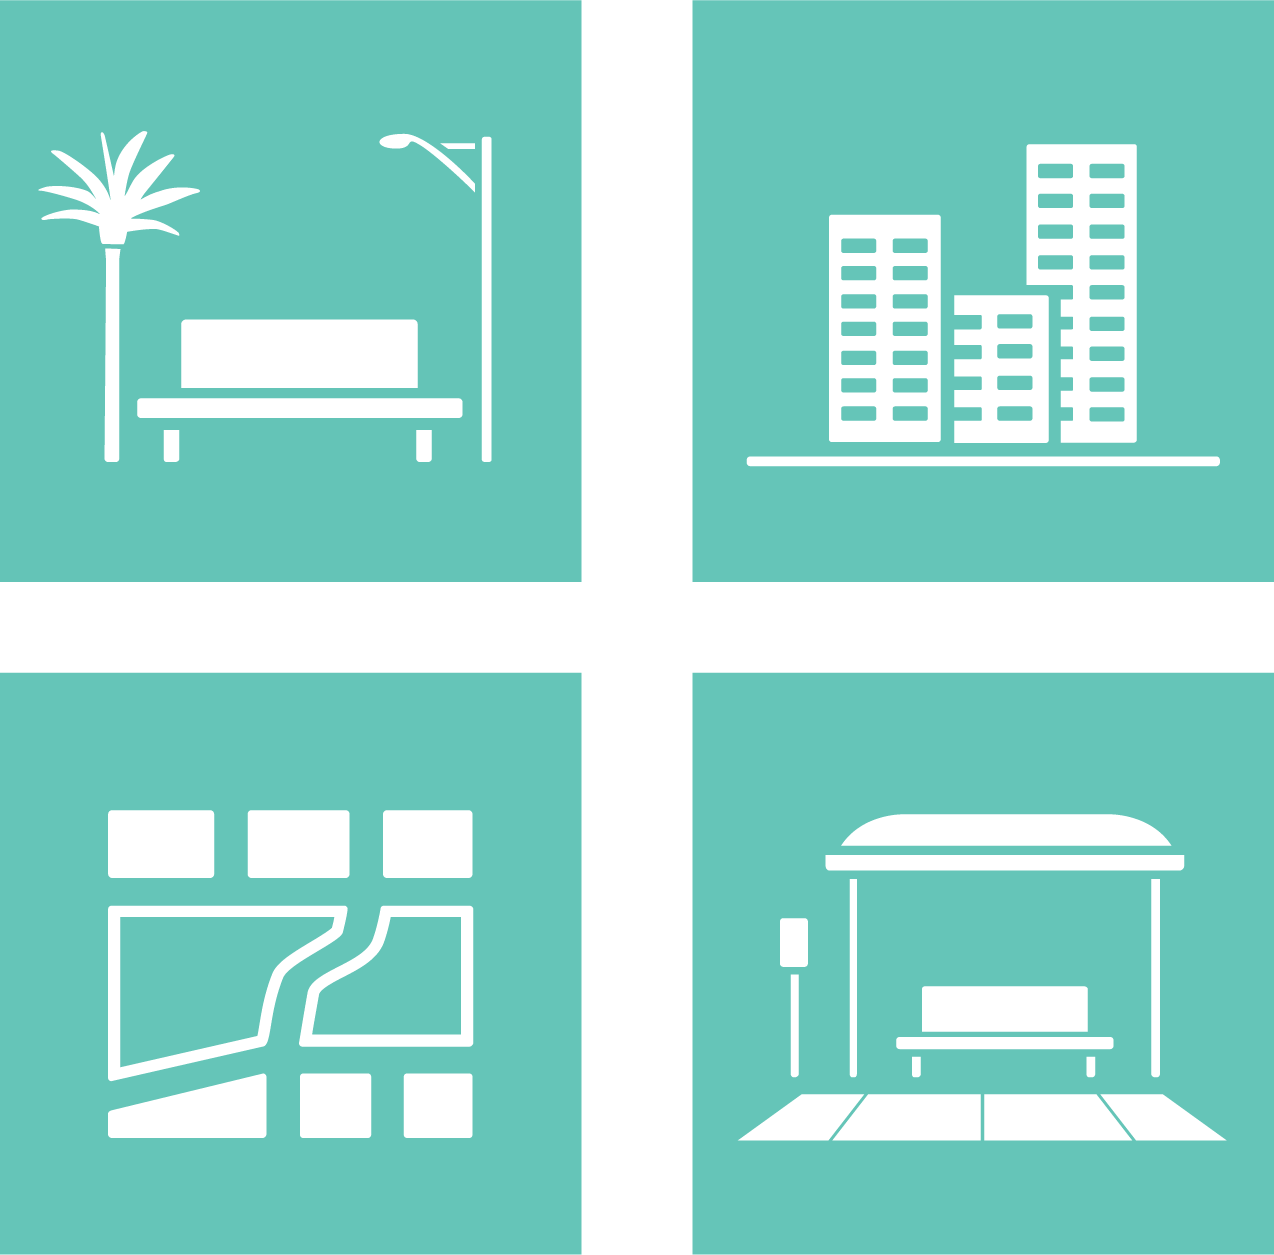 Active Design Icons for Parks & Open Spaces, Buildings, Development Patterns, and Mobility